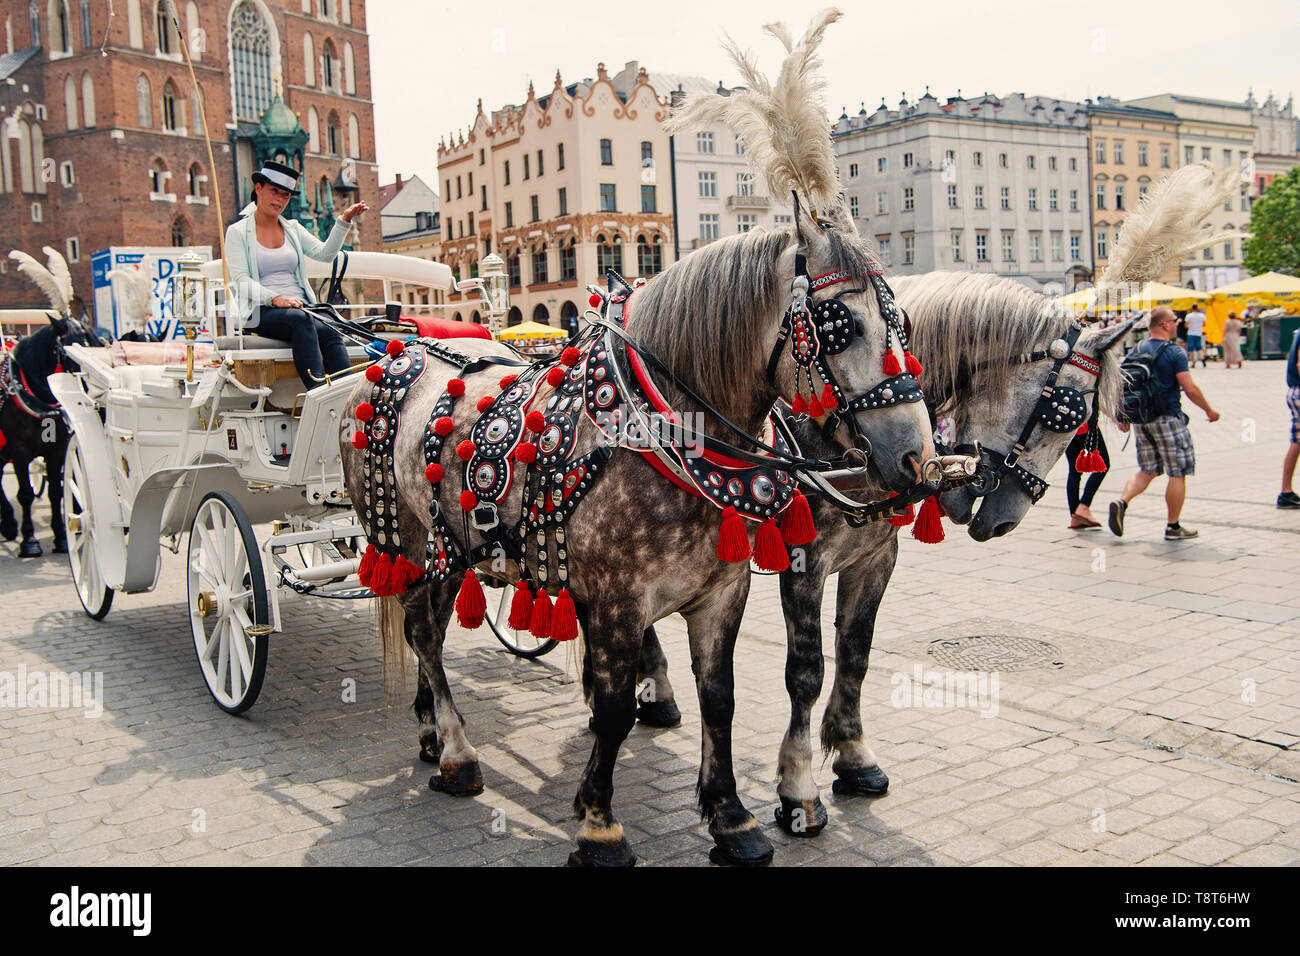 Krakow, Poland - June 04, 2016: woman rider invite to horse and carriage tour in city square. Vacation, travelling, discovery concept. - Stock Image